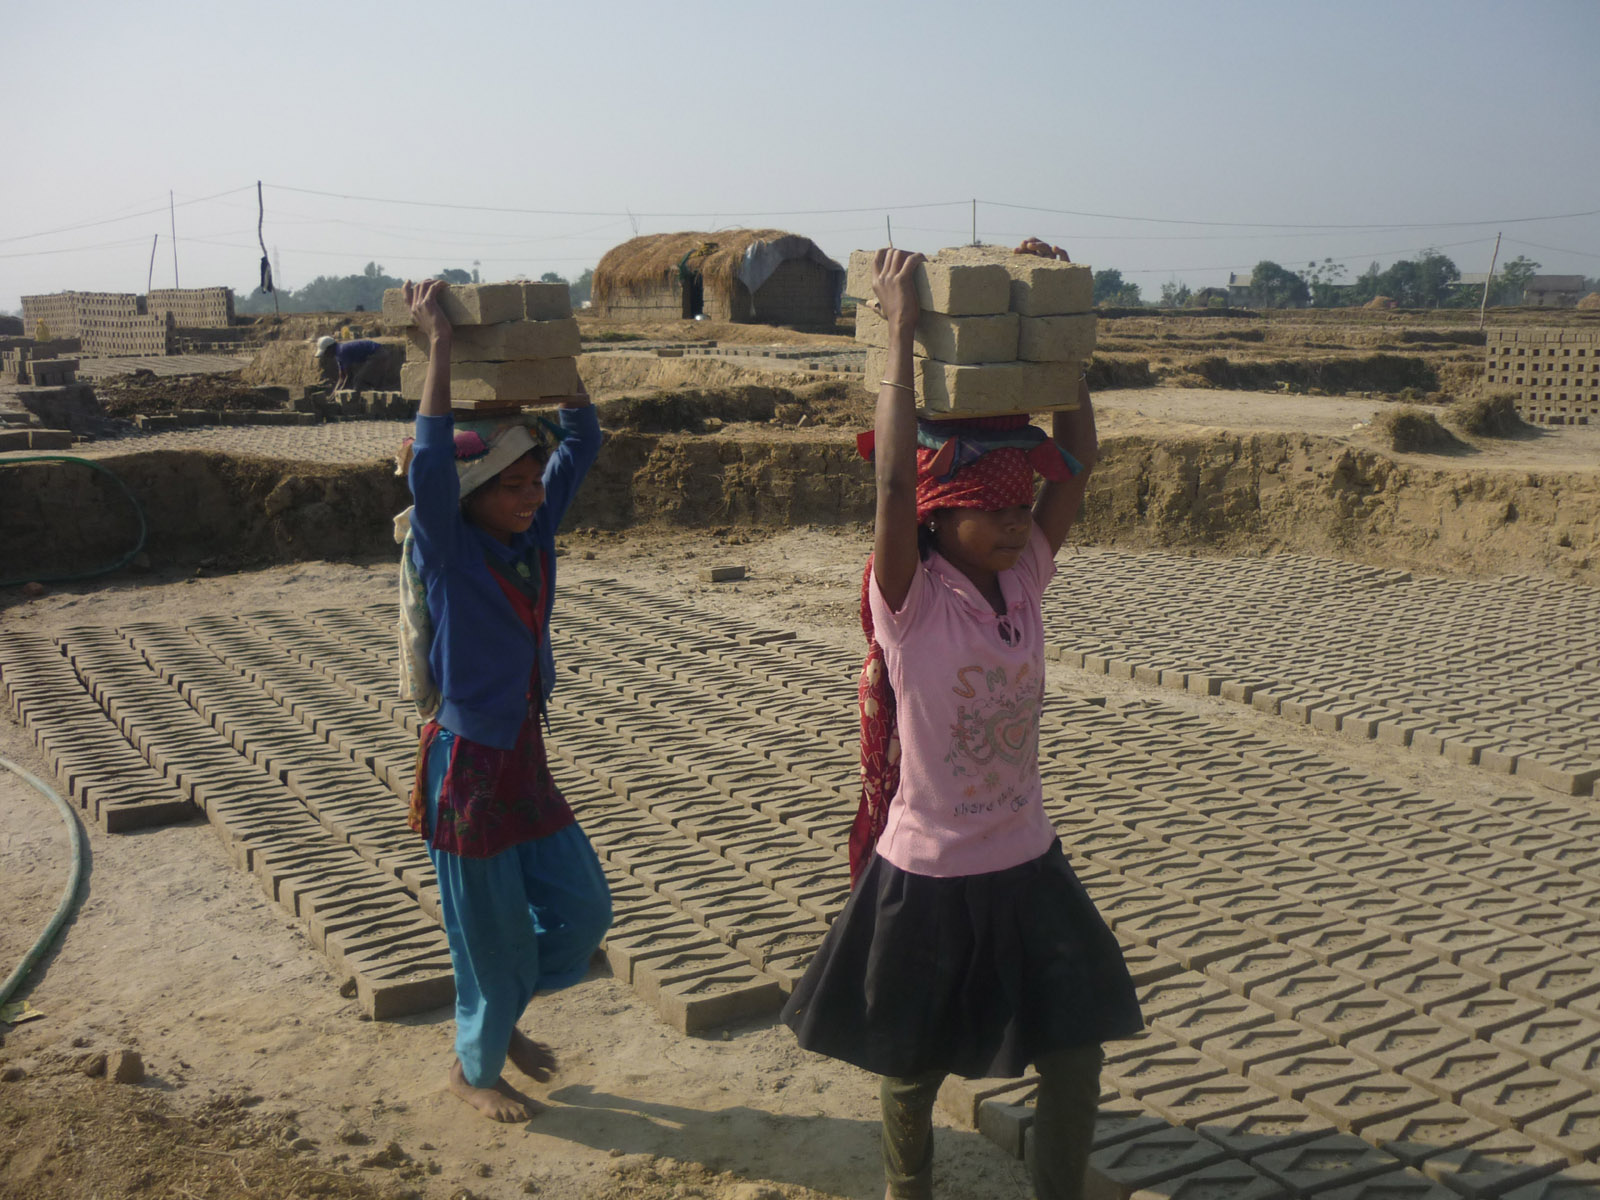 child labour photo essay